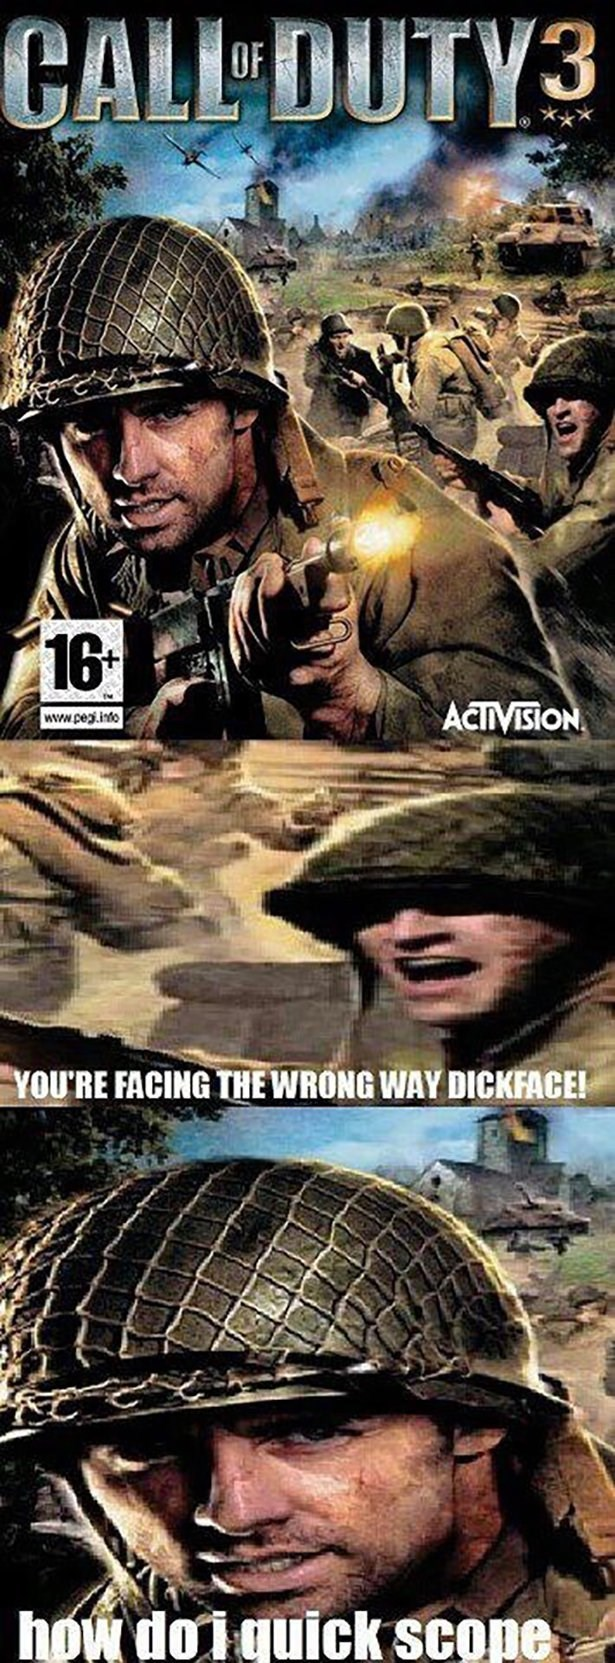 call-of-duty-3-video-games-logic-picture-funny